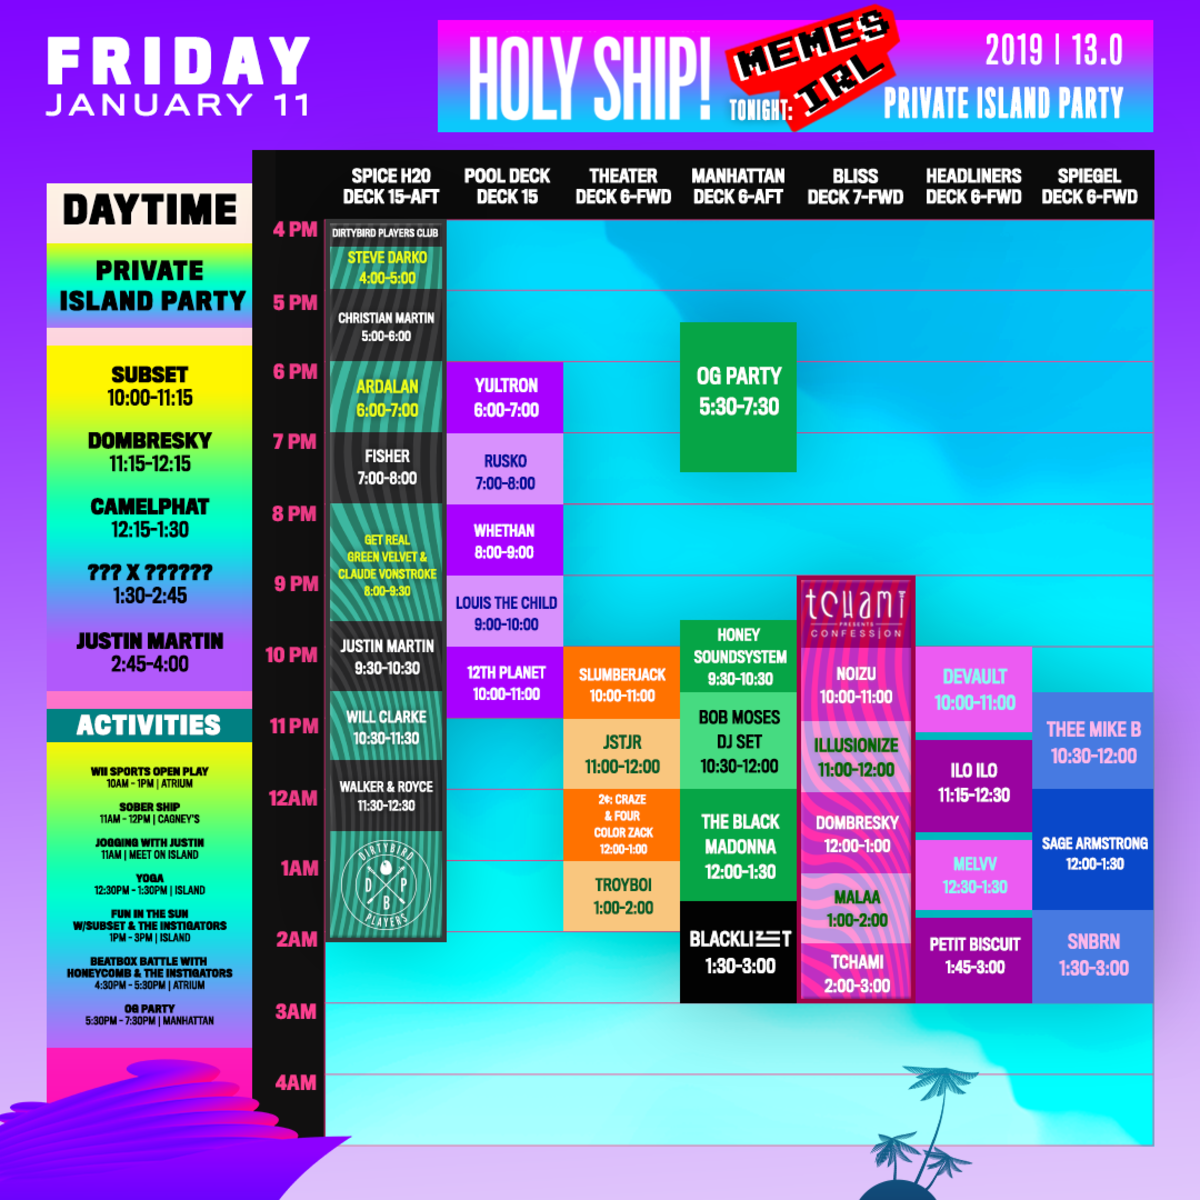 holy_ship_2019_lu_set_times_social_assets_day_3_13.0_1080x1080_r03